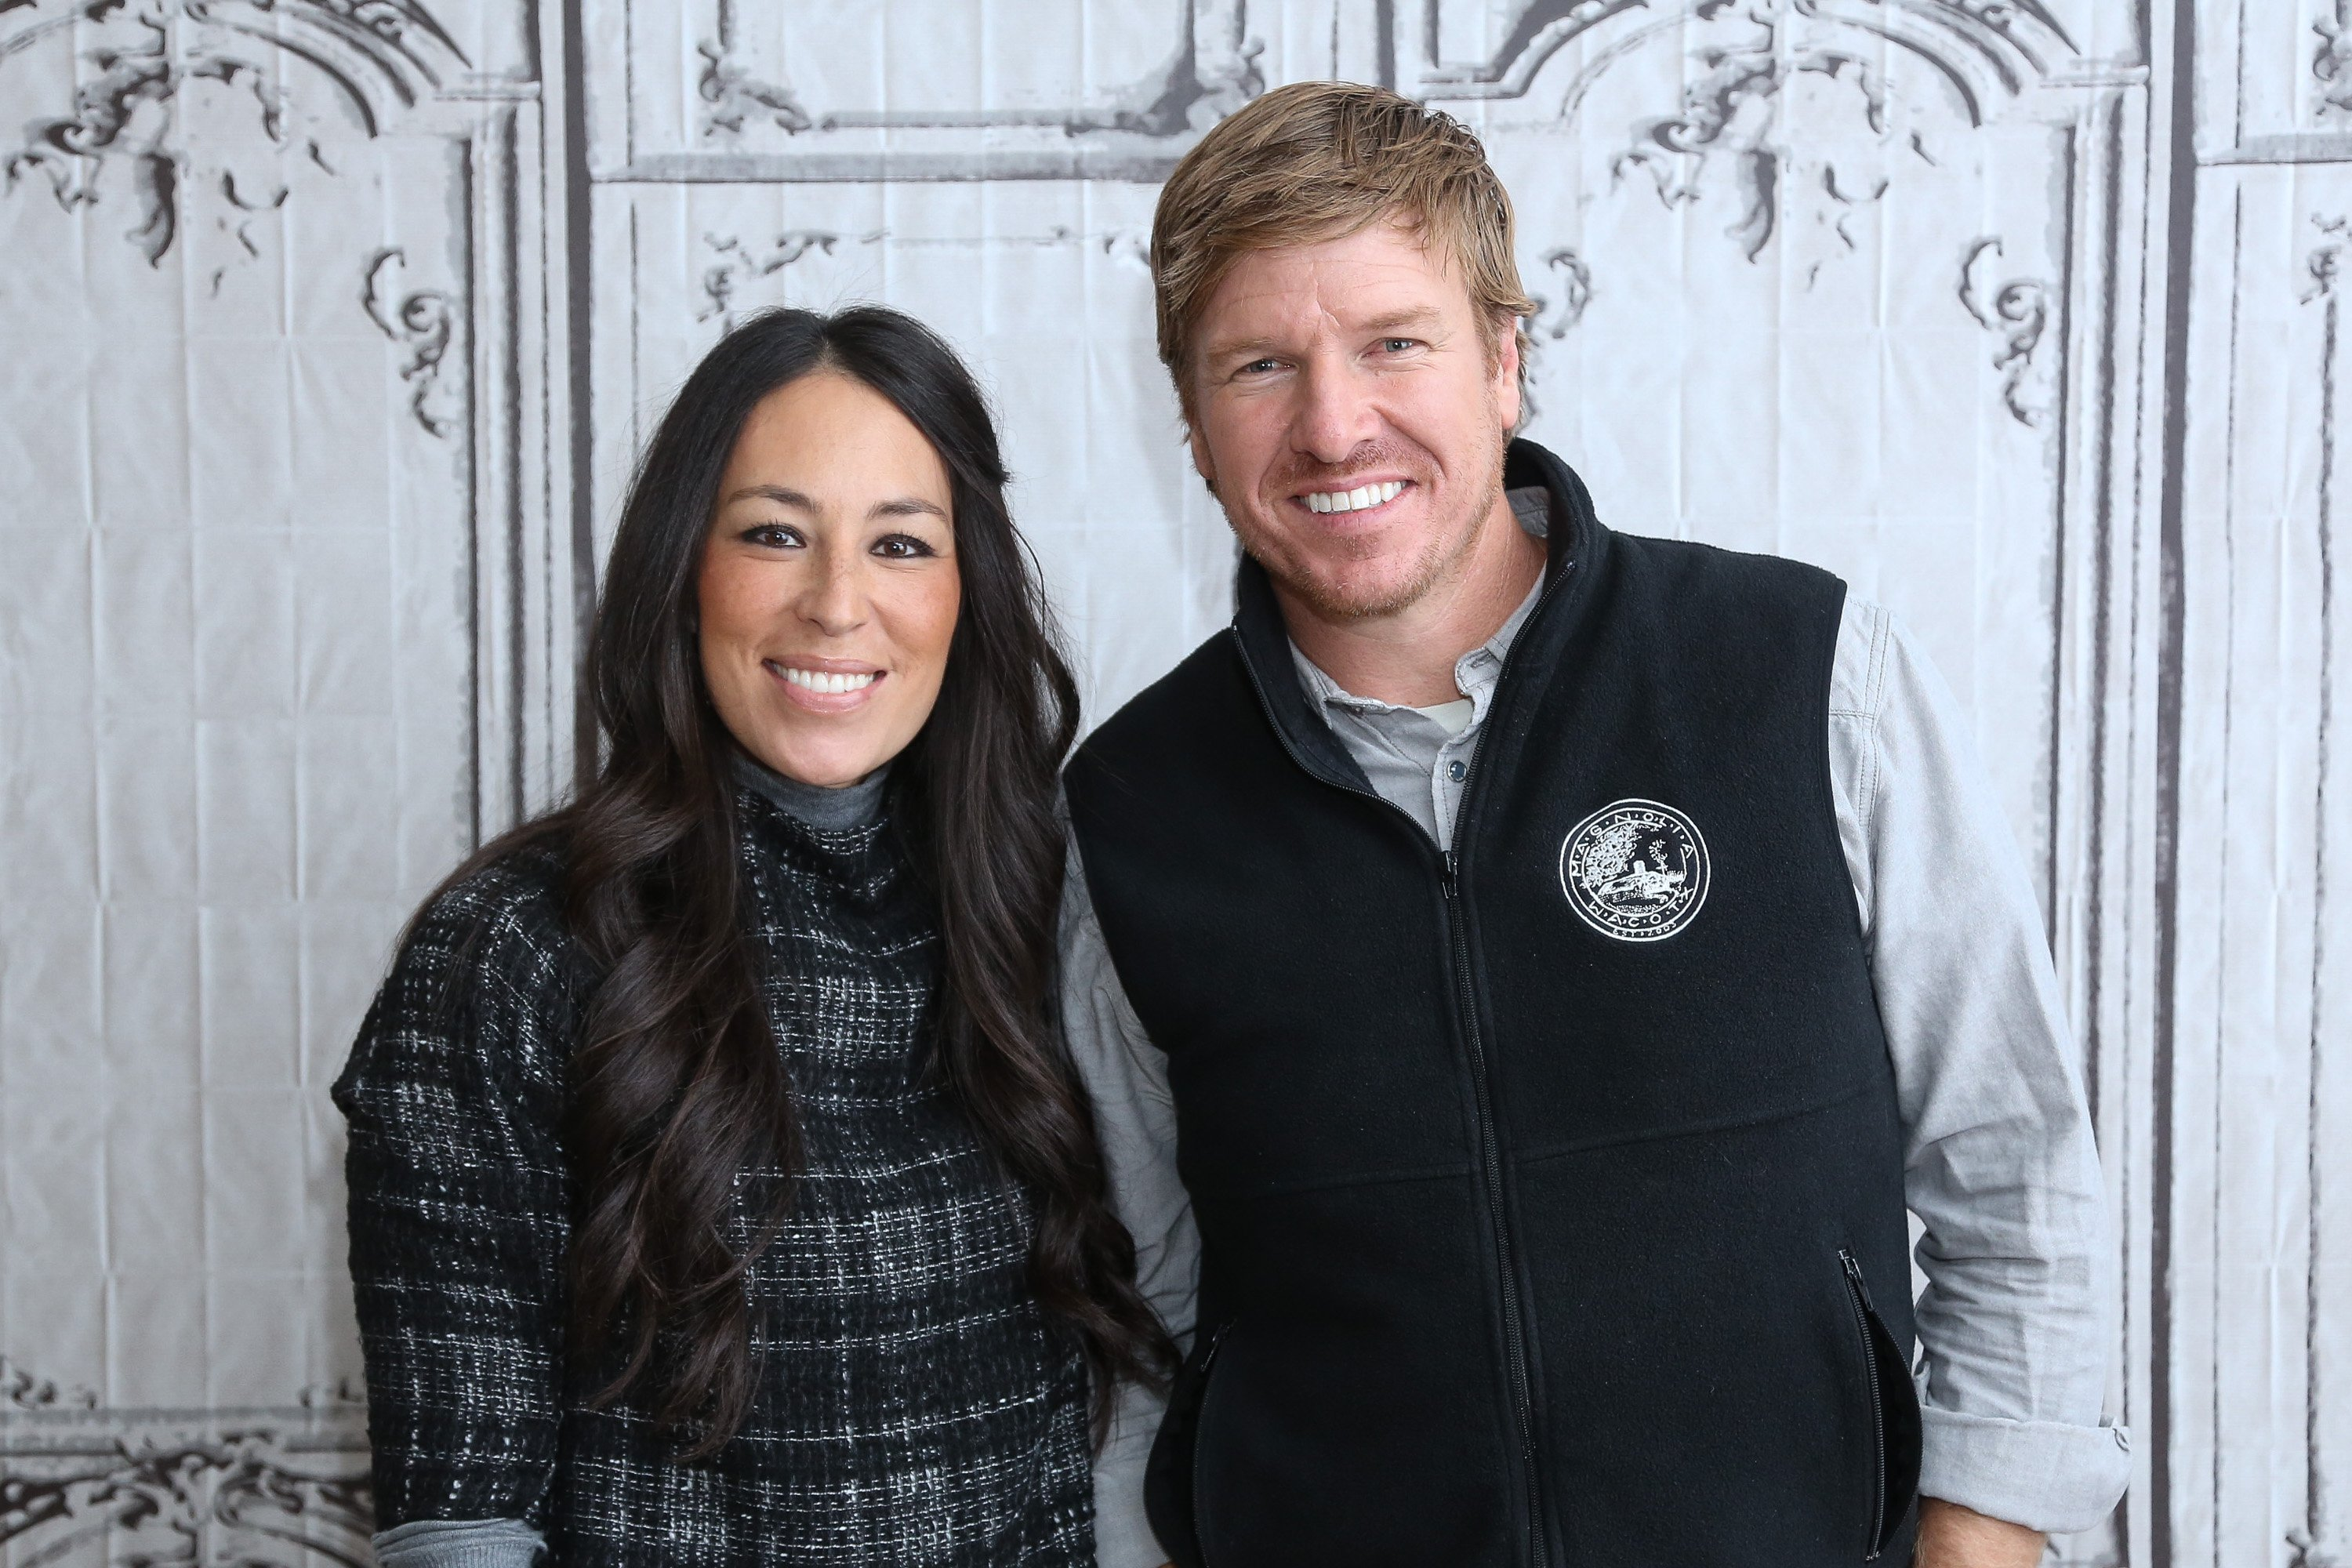 """Chip and Joanna Gaines attend AOL Build Presents: """"Fixer Upper"""" at AOL Studios In New York on December 8, 2015. 